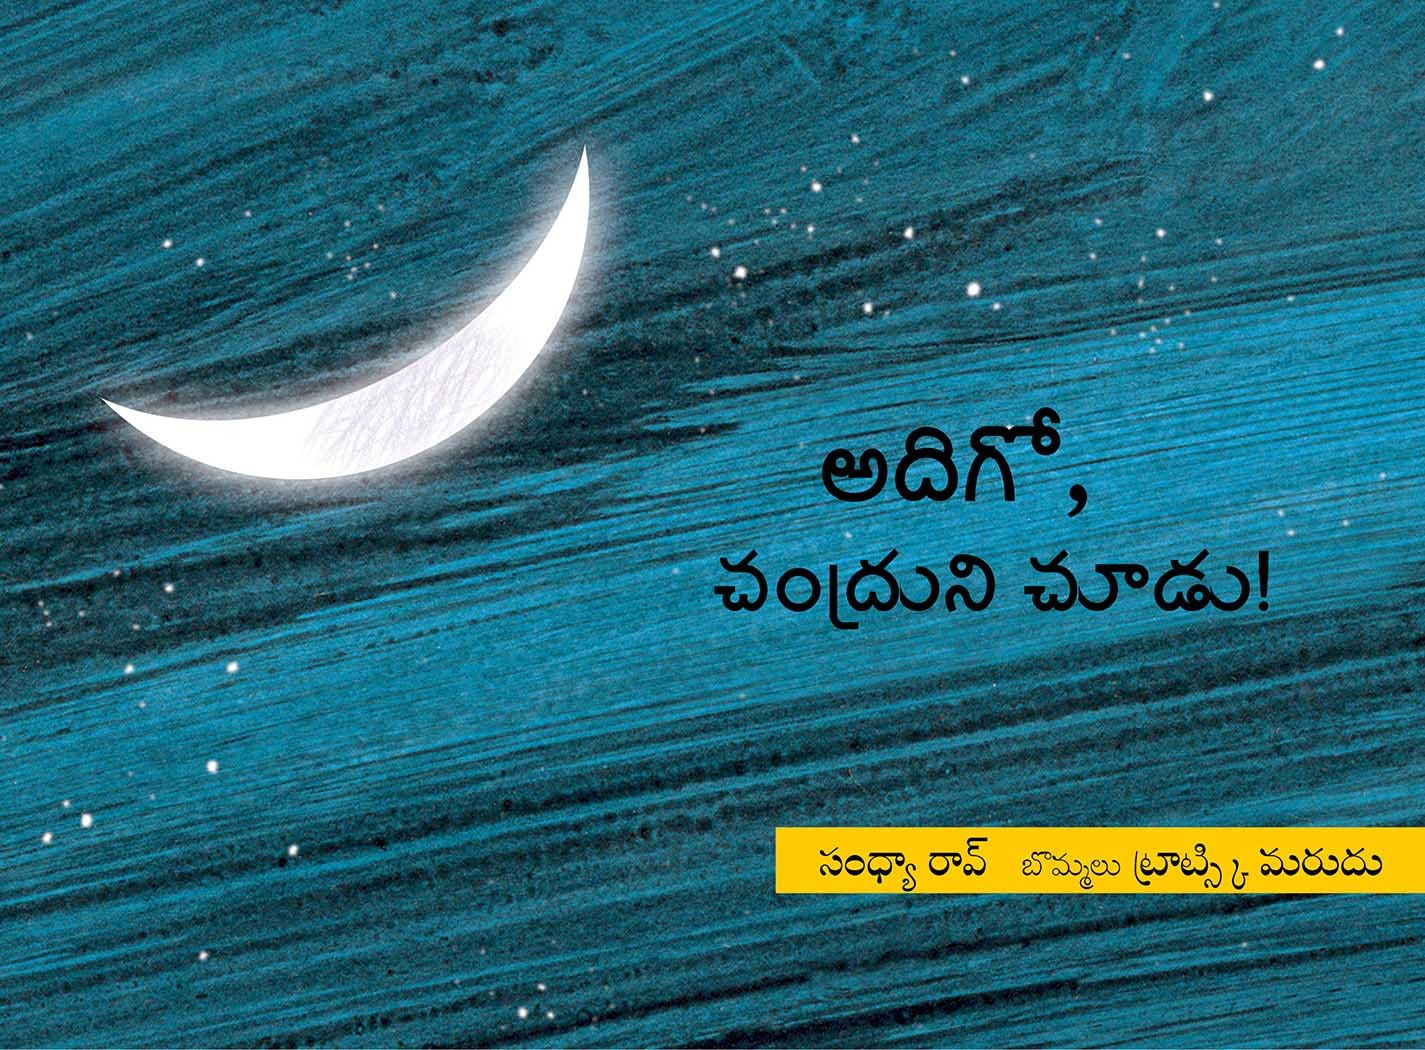 Look, The Moon!/Adigo, Chandruni Choodu! (Telugu)